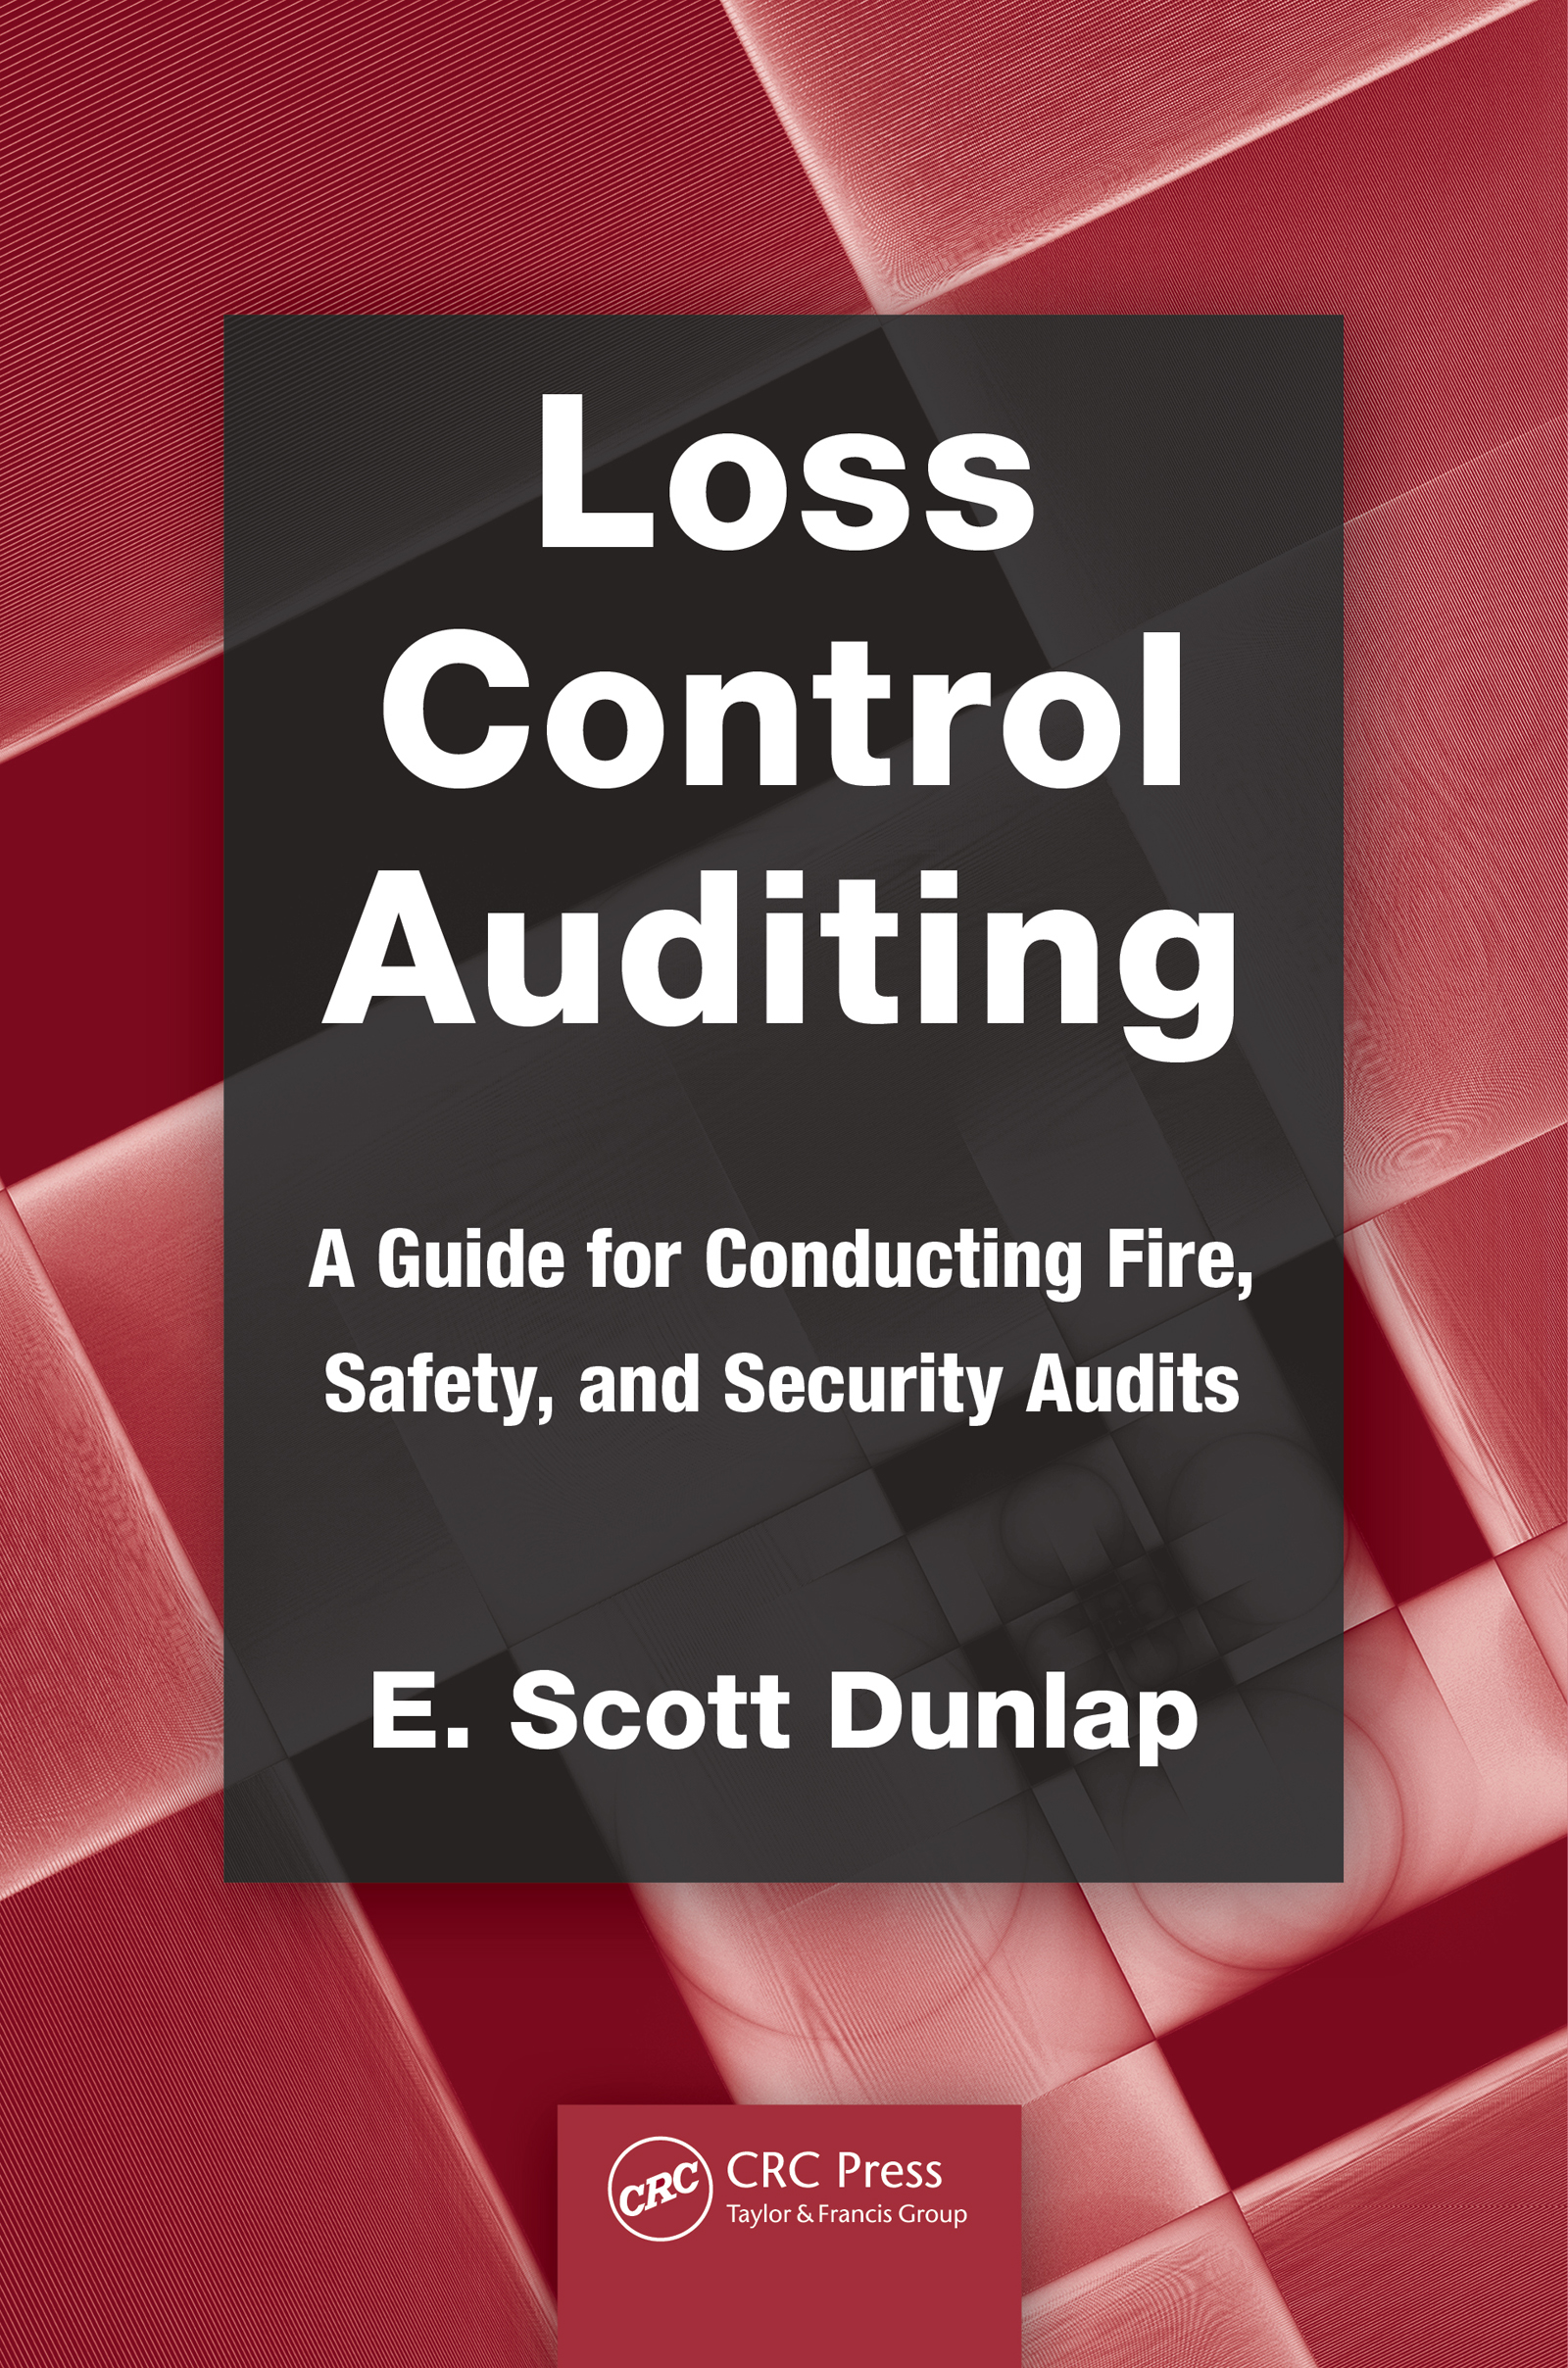 Download Ebook Loss Control Auditing by E. Scott Dunlap Pdf